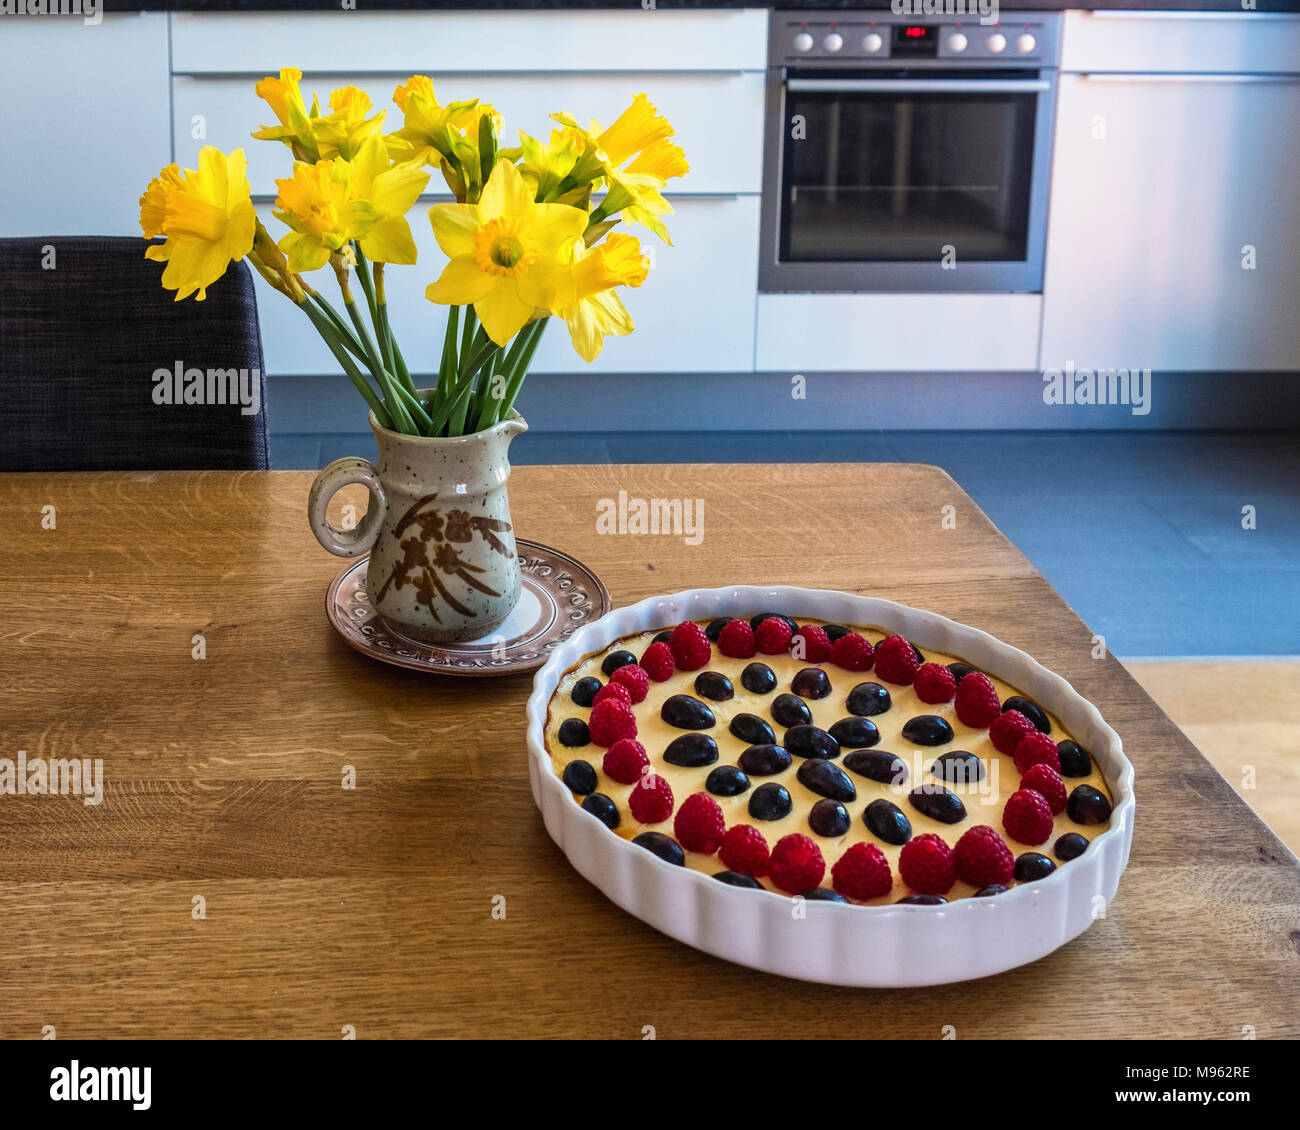 Kitchen scene - Daffodils in a pottery vase and delicious cheesecake In white dish with grape & berry topping on wooden table - Stock Image